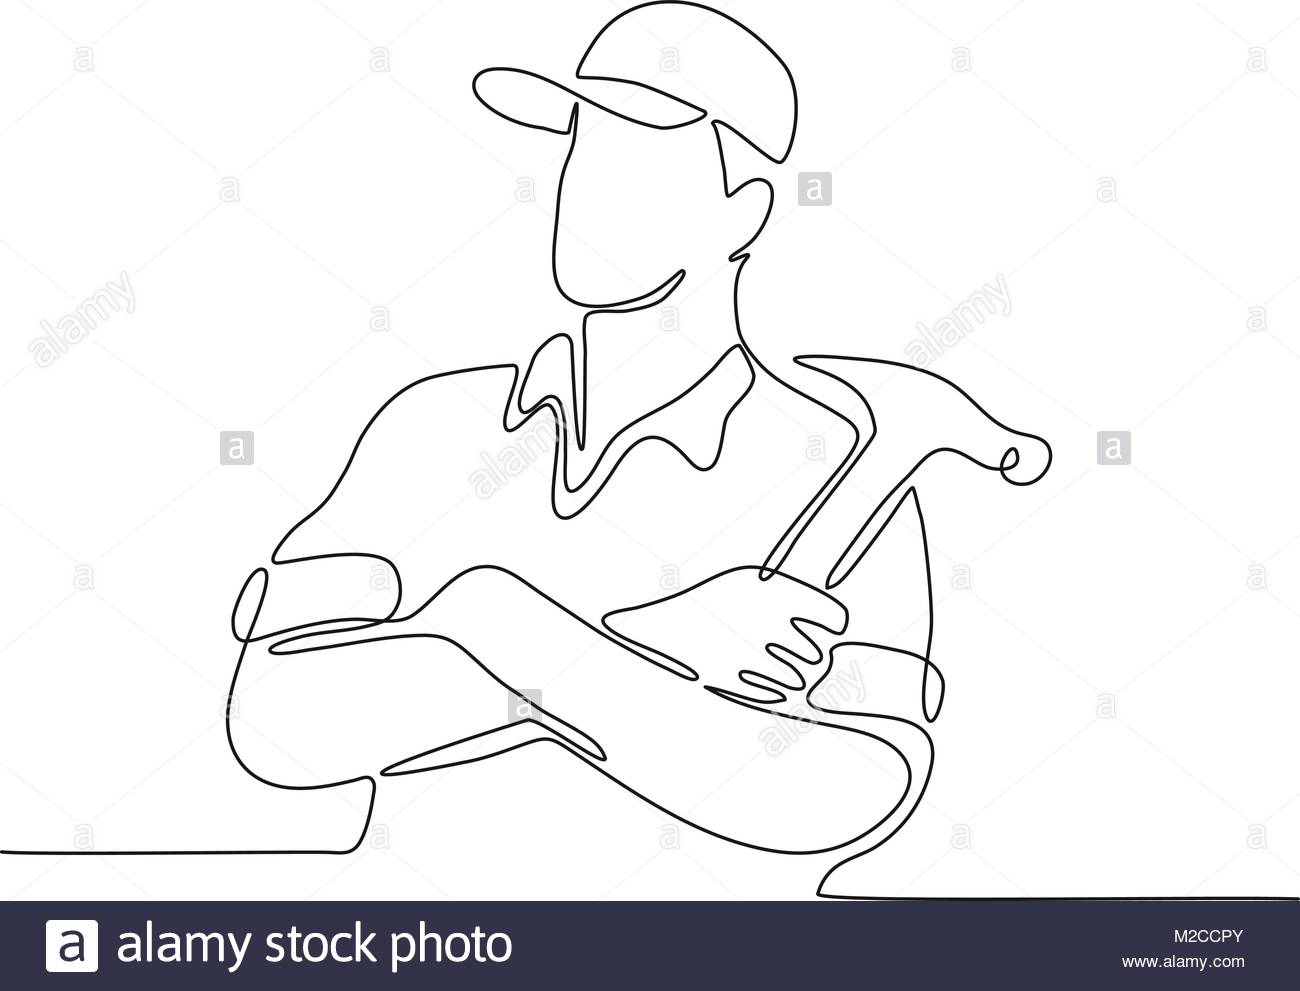 1300x991 Continuous Line Drawing Illustration Of A Builder, Carpenter